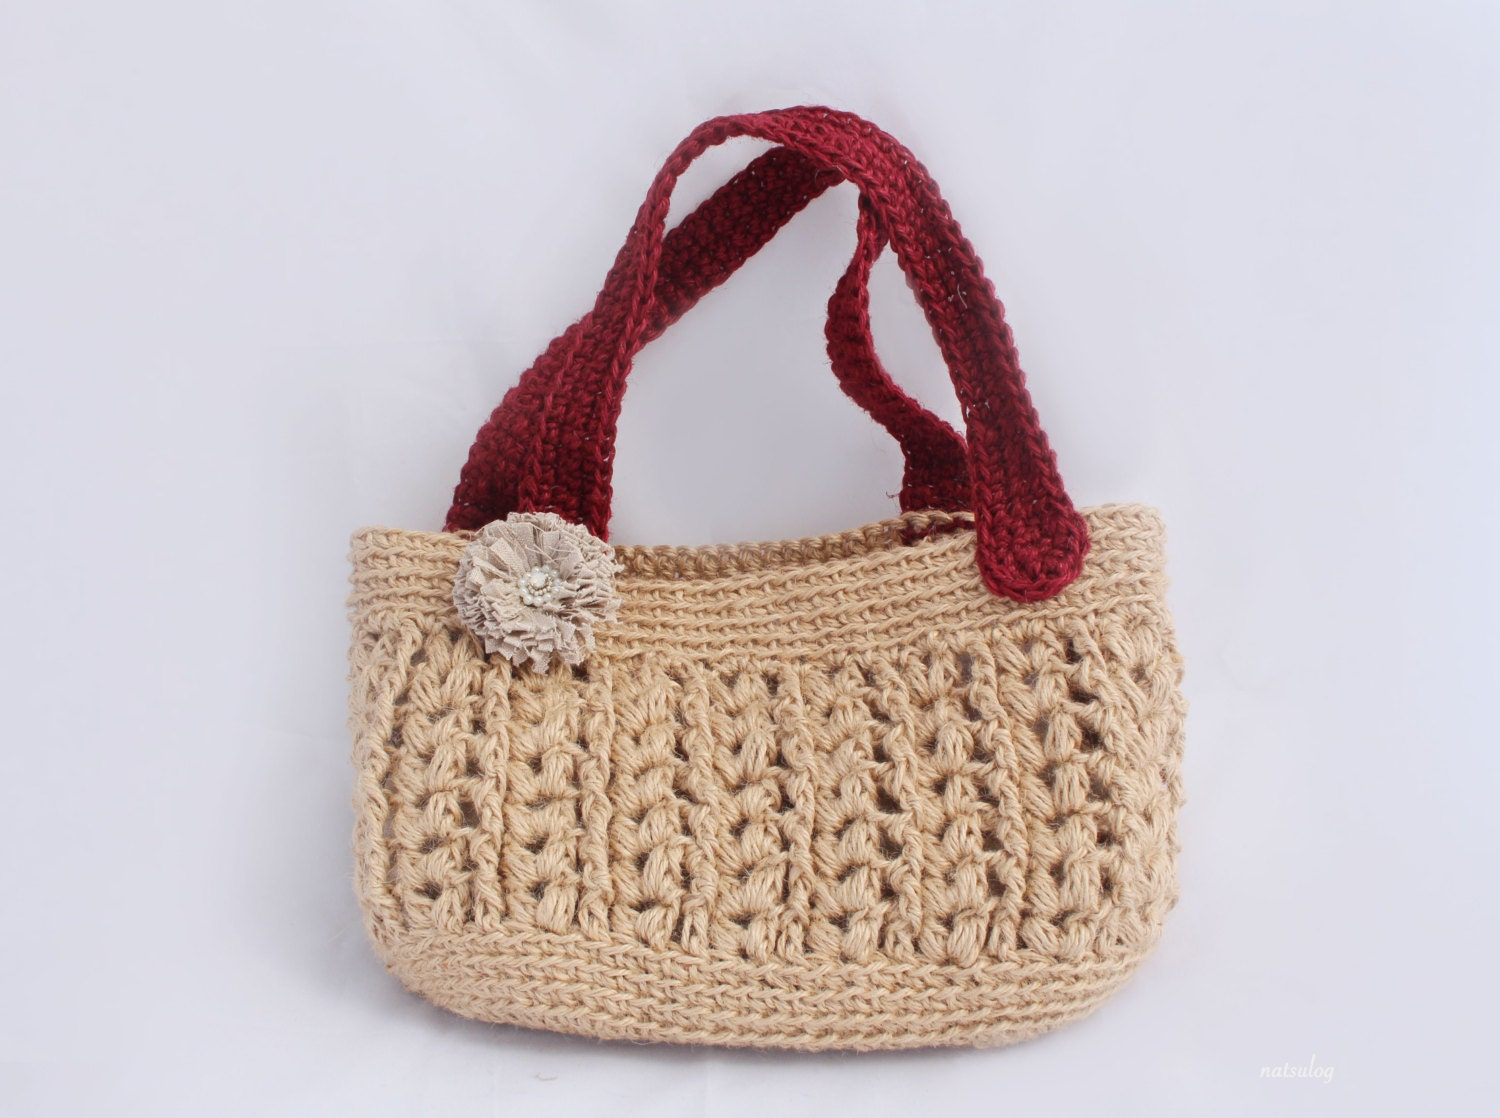 Crochet Small Tote Bag Pattern : Crochet Jute bag pattern Crochet tote bag pattern Crochet